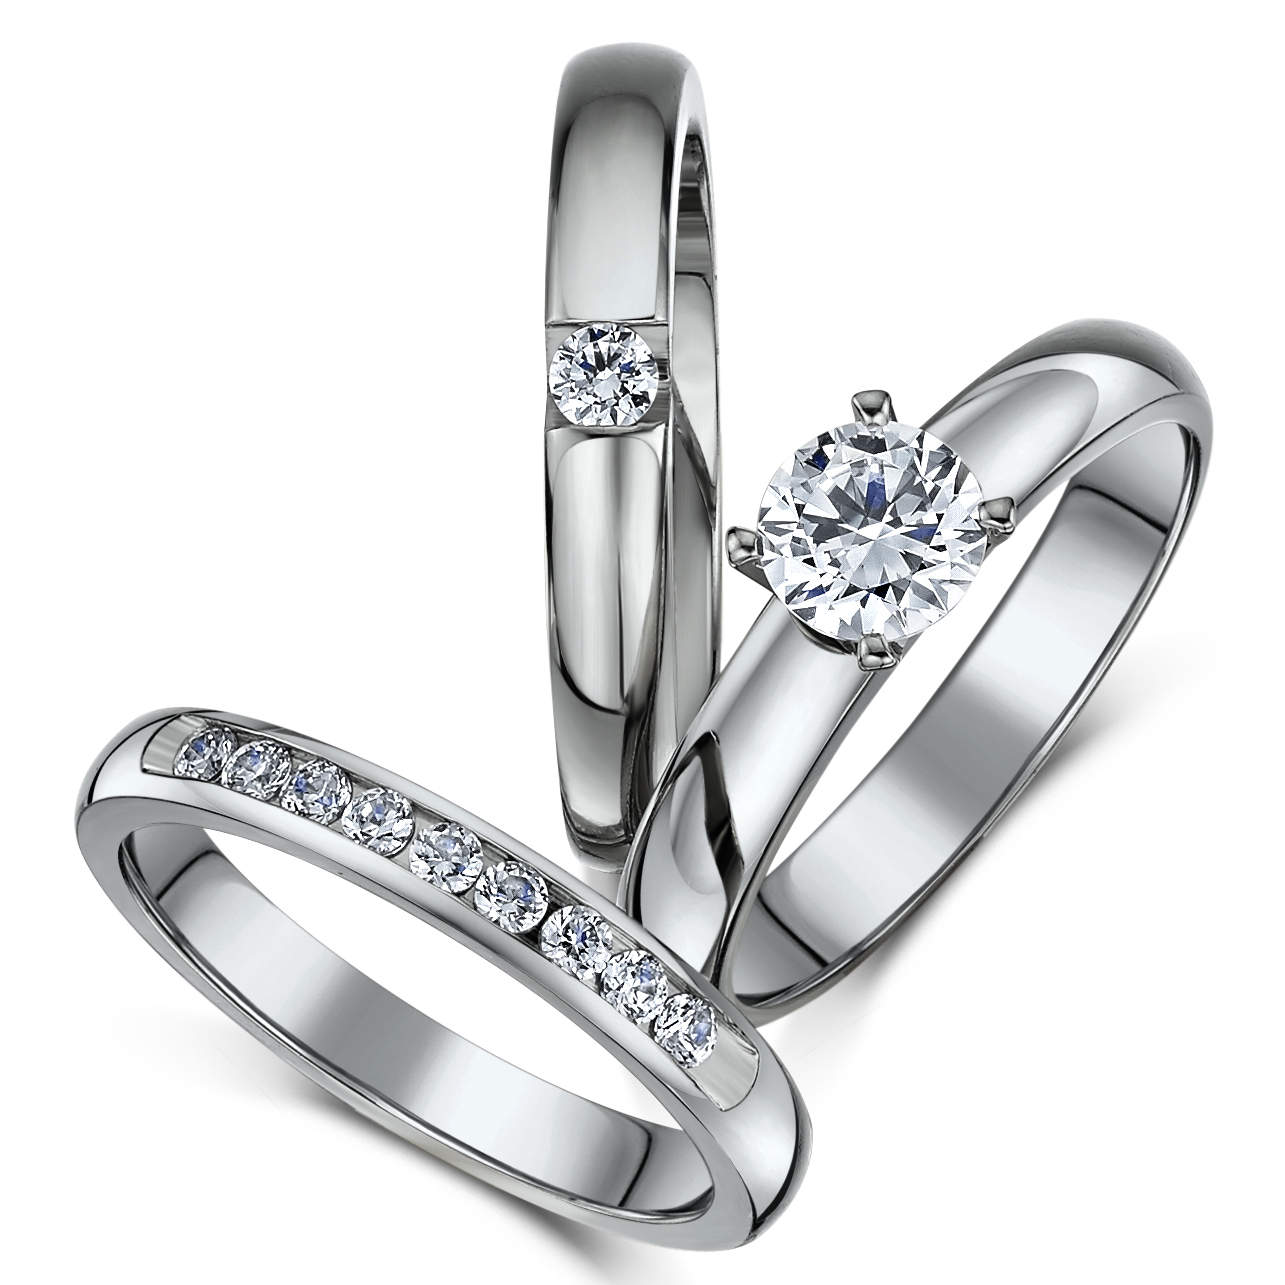 triple titanium bridal set engagement eternity and cz stone ring - Titanium Wedding Ring Sets